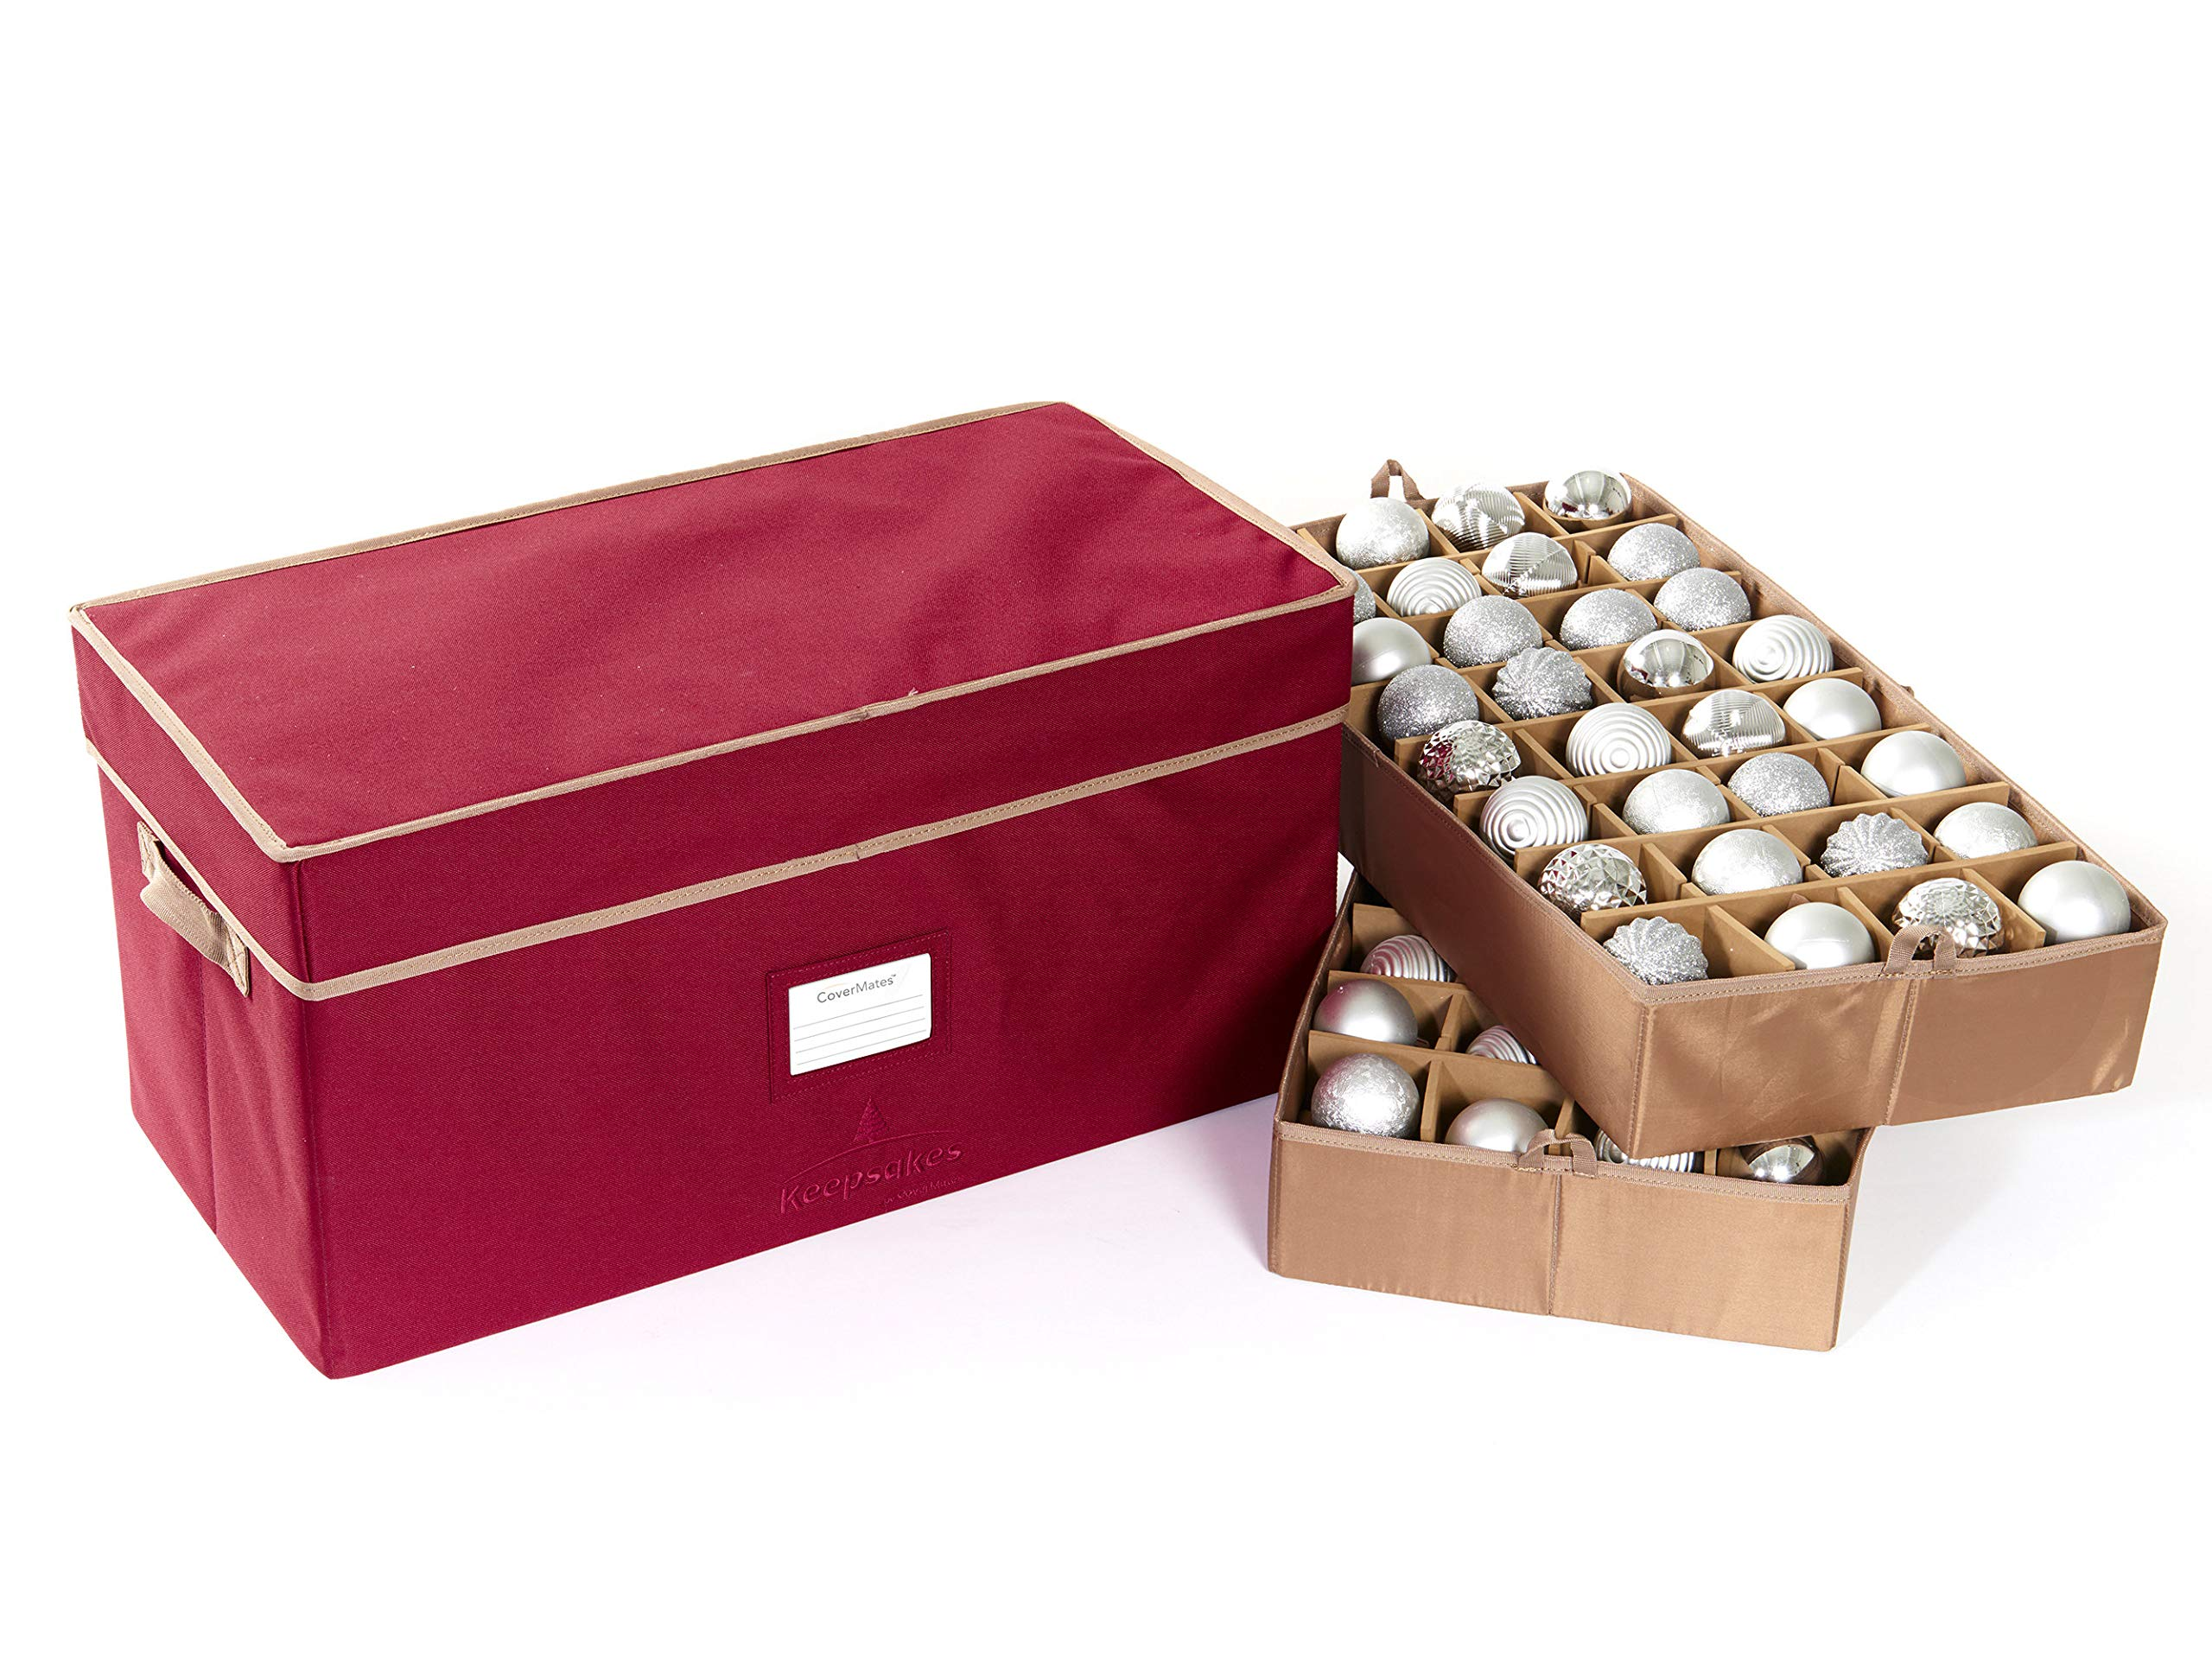 CoverMates – Holiday Adjustable Ornament Storage Box – Holds 54 to 96 Ornaments – 3 Year Warranty- Red